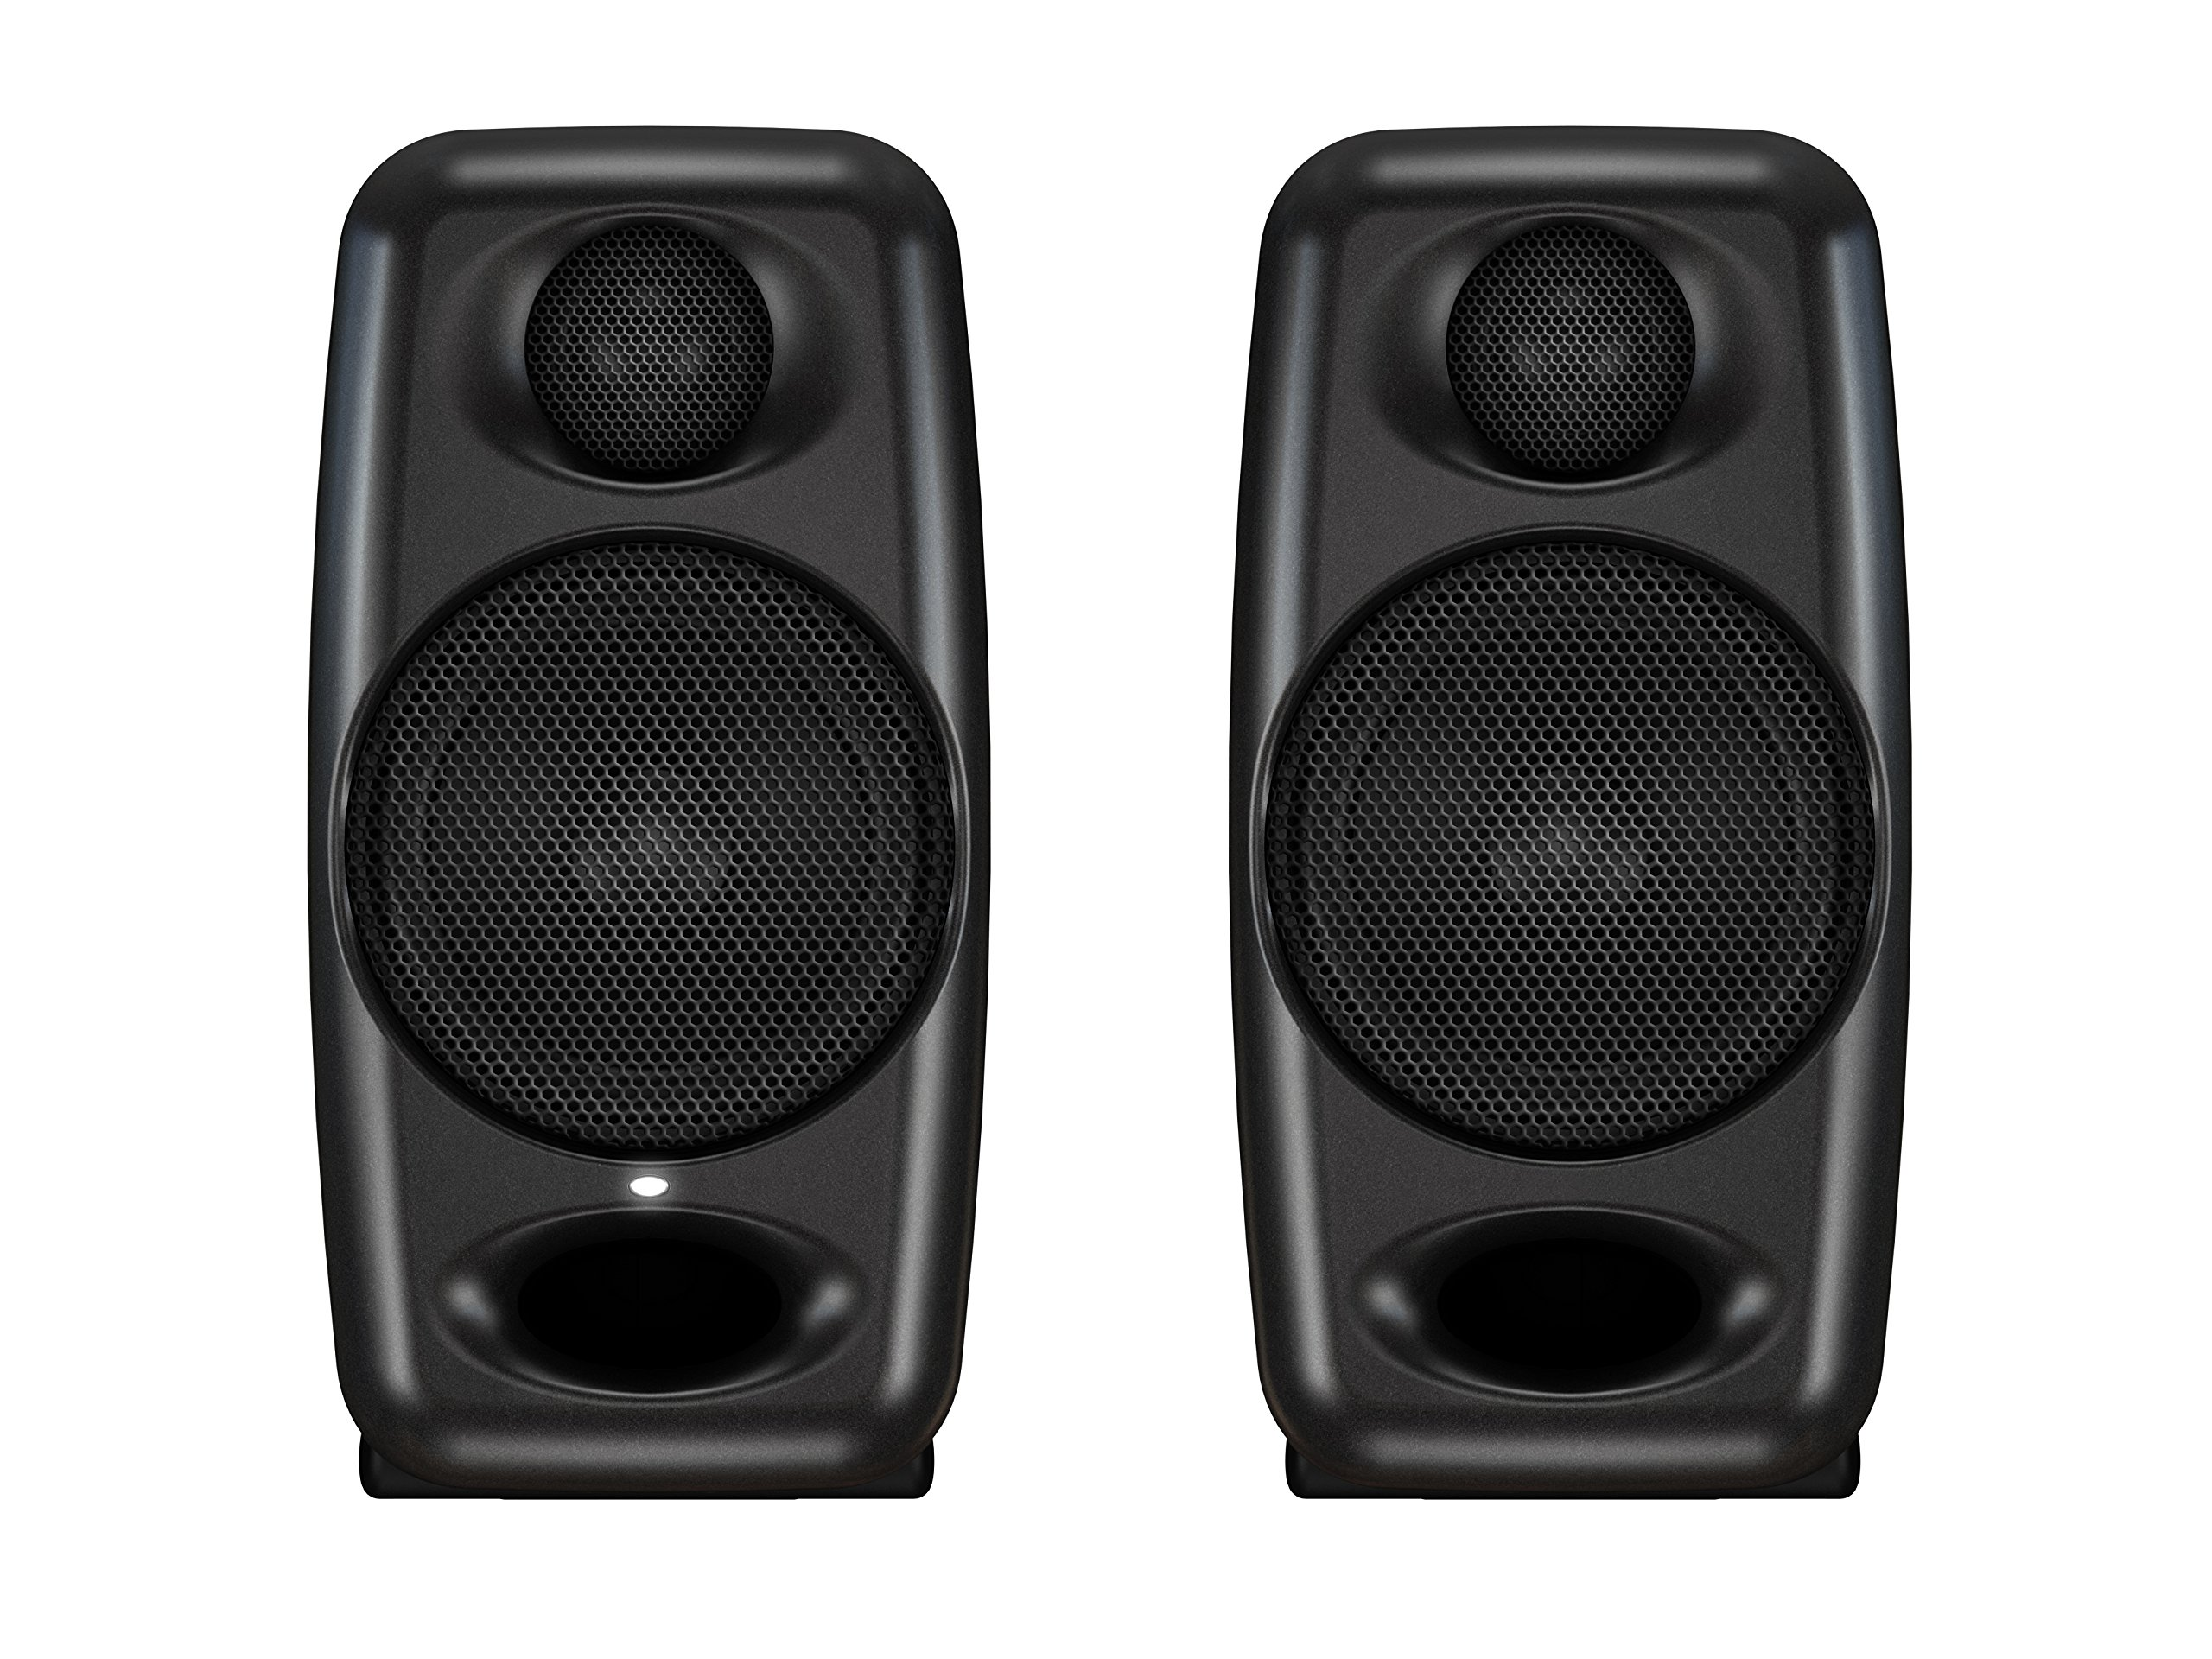 iLoud Micro Monitor speakers